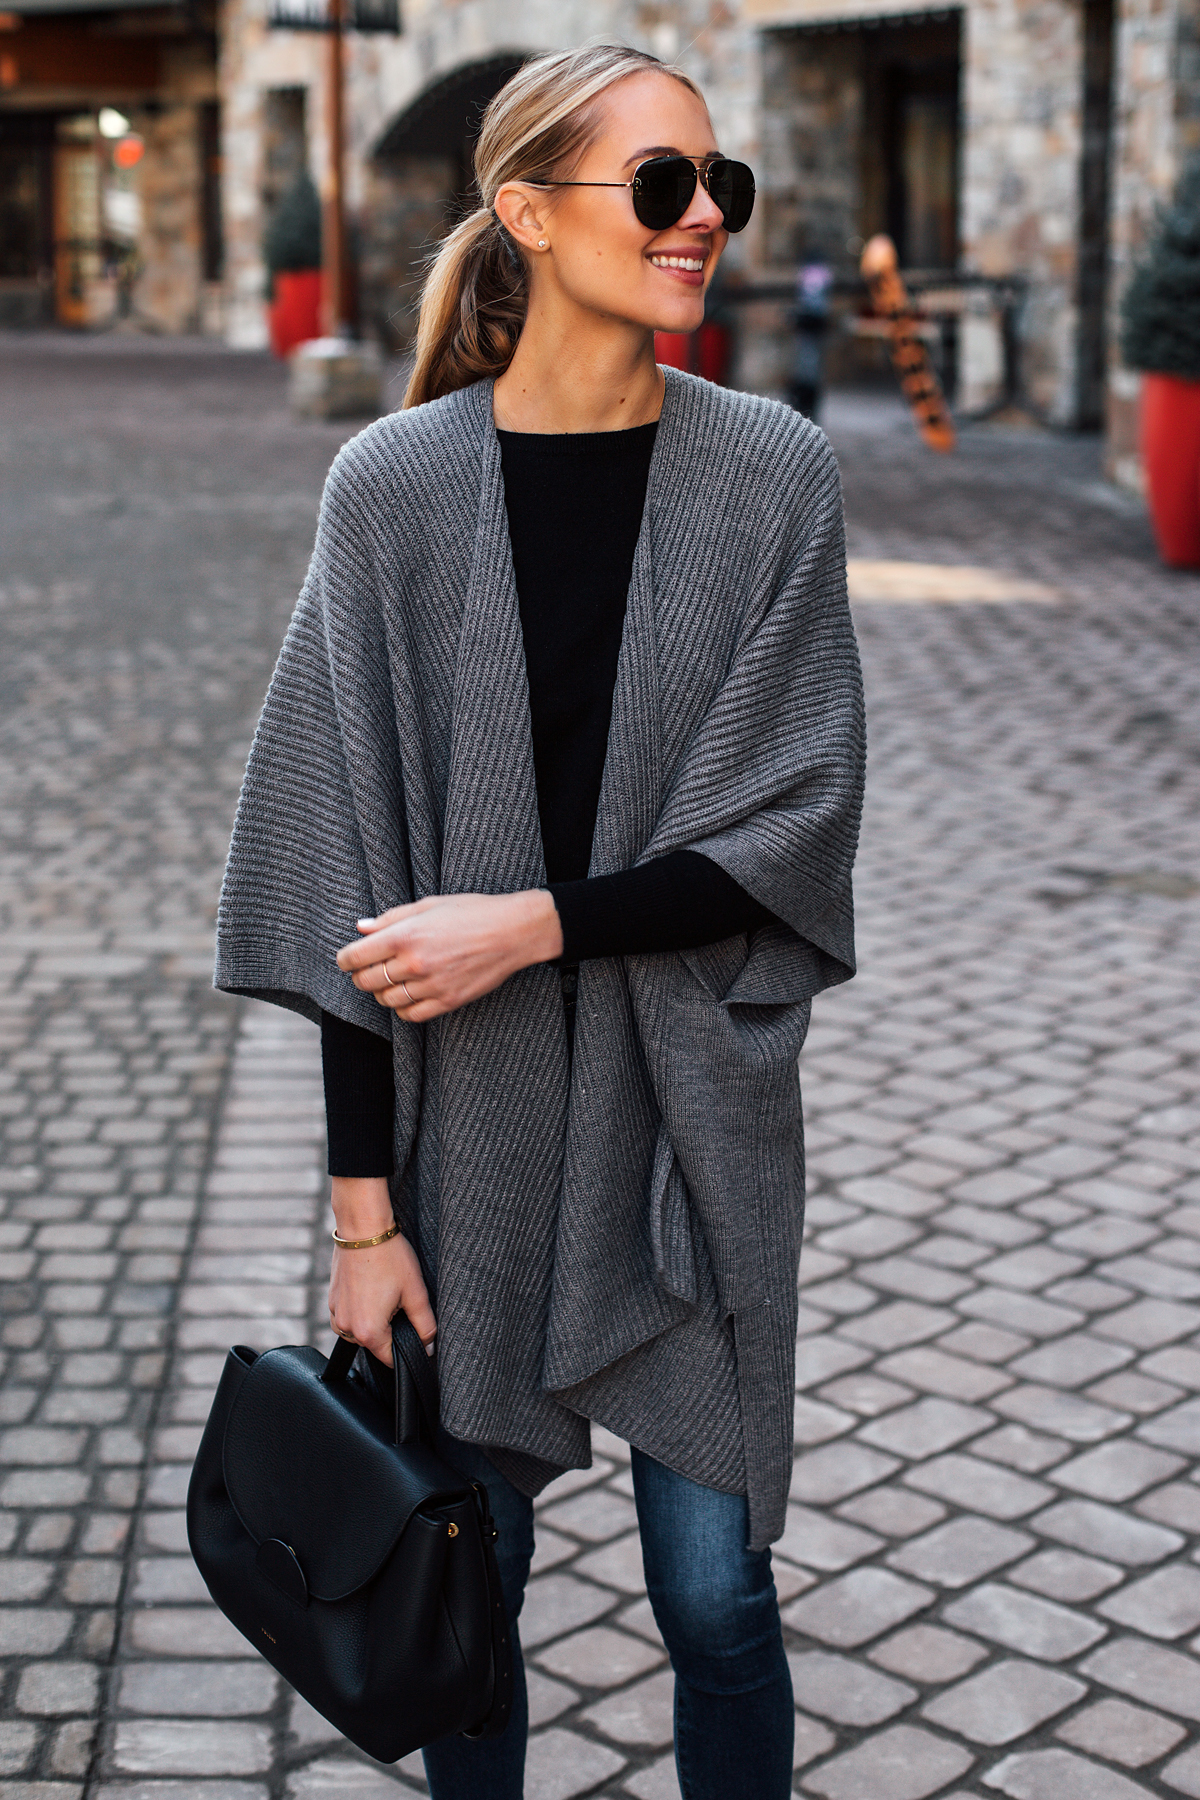 Blonde Woman Wearing Grey Sweater Poncho Black Top Denim Skinny Jeans Polene Black Handbag Fashion Jackson San Diego Fashion Blogger Street Style